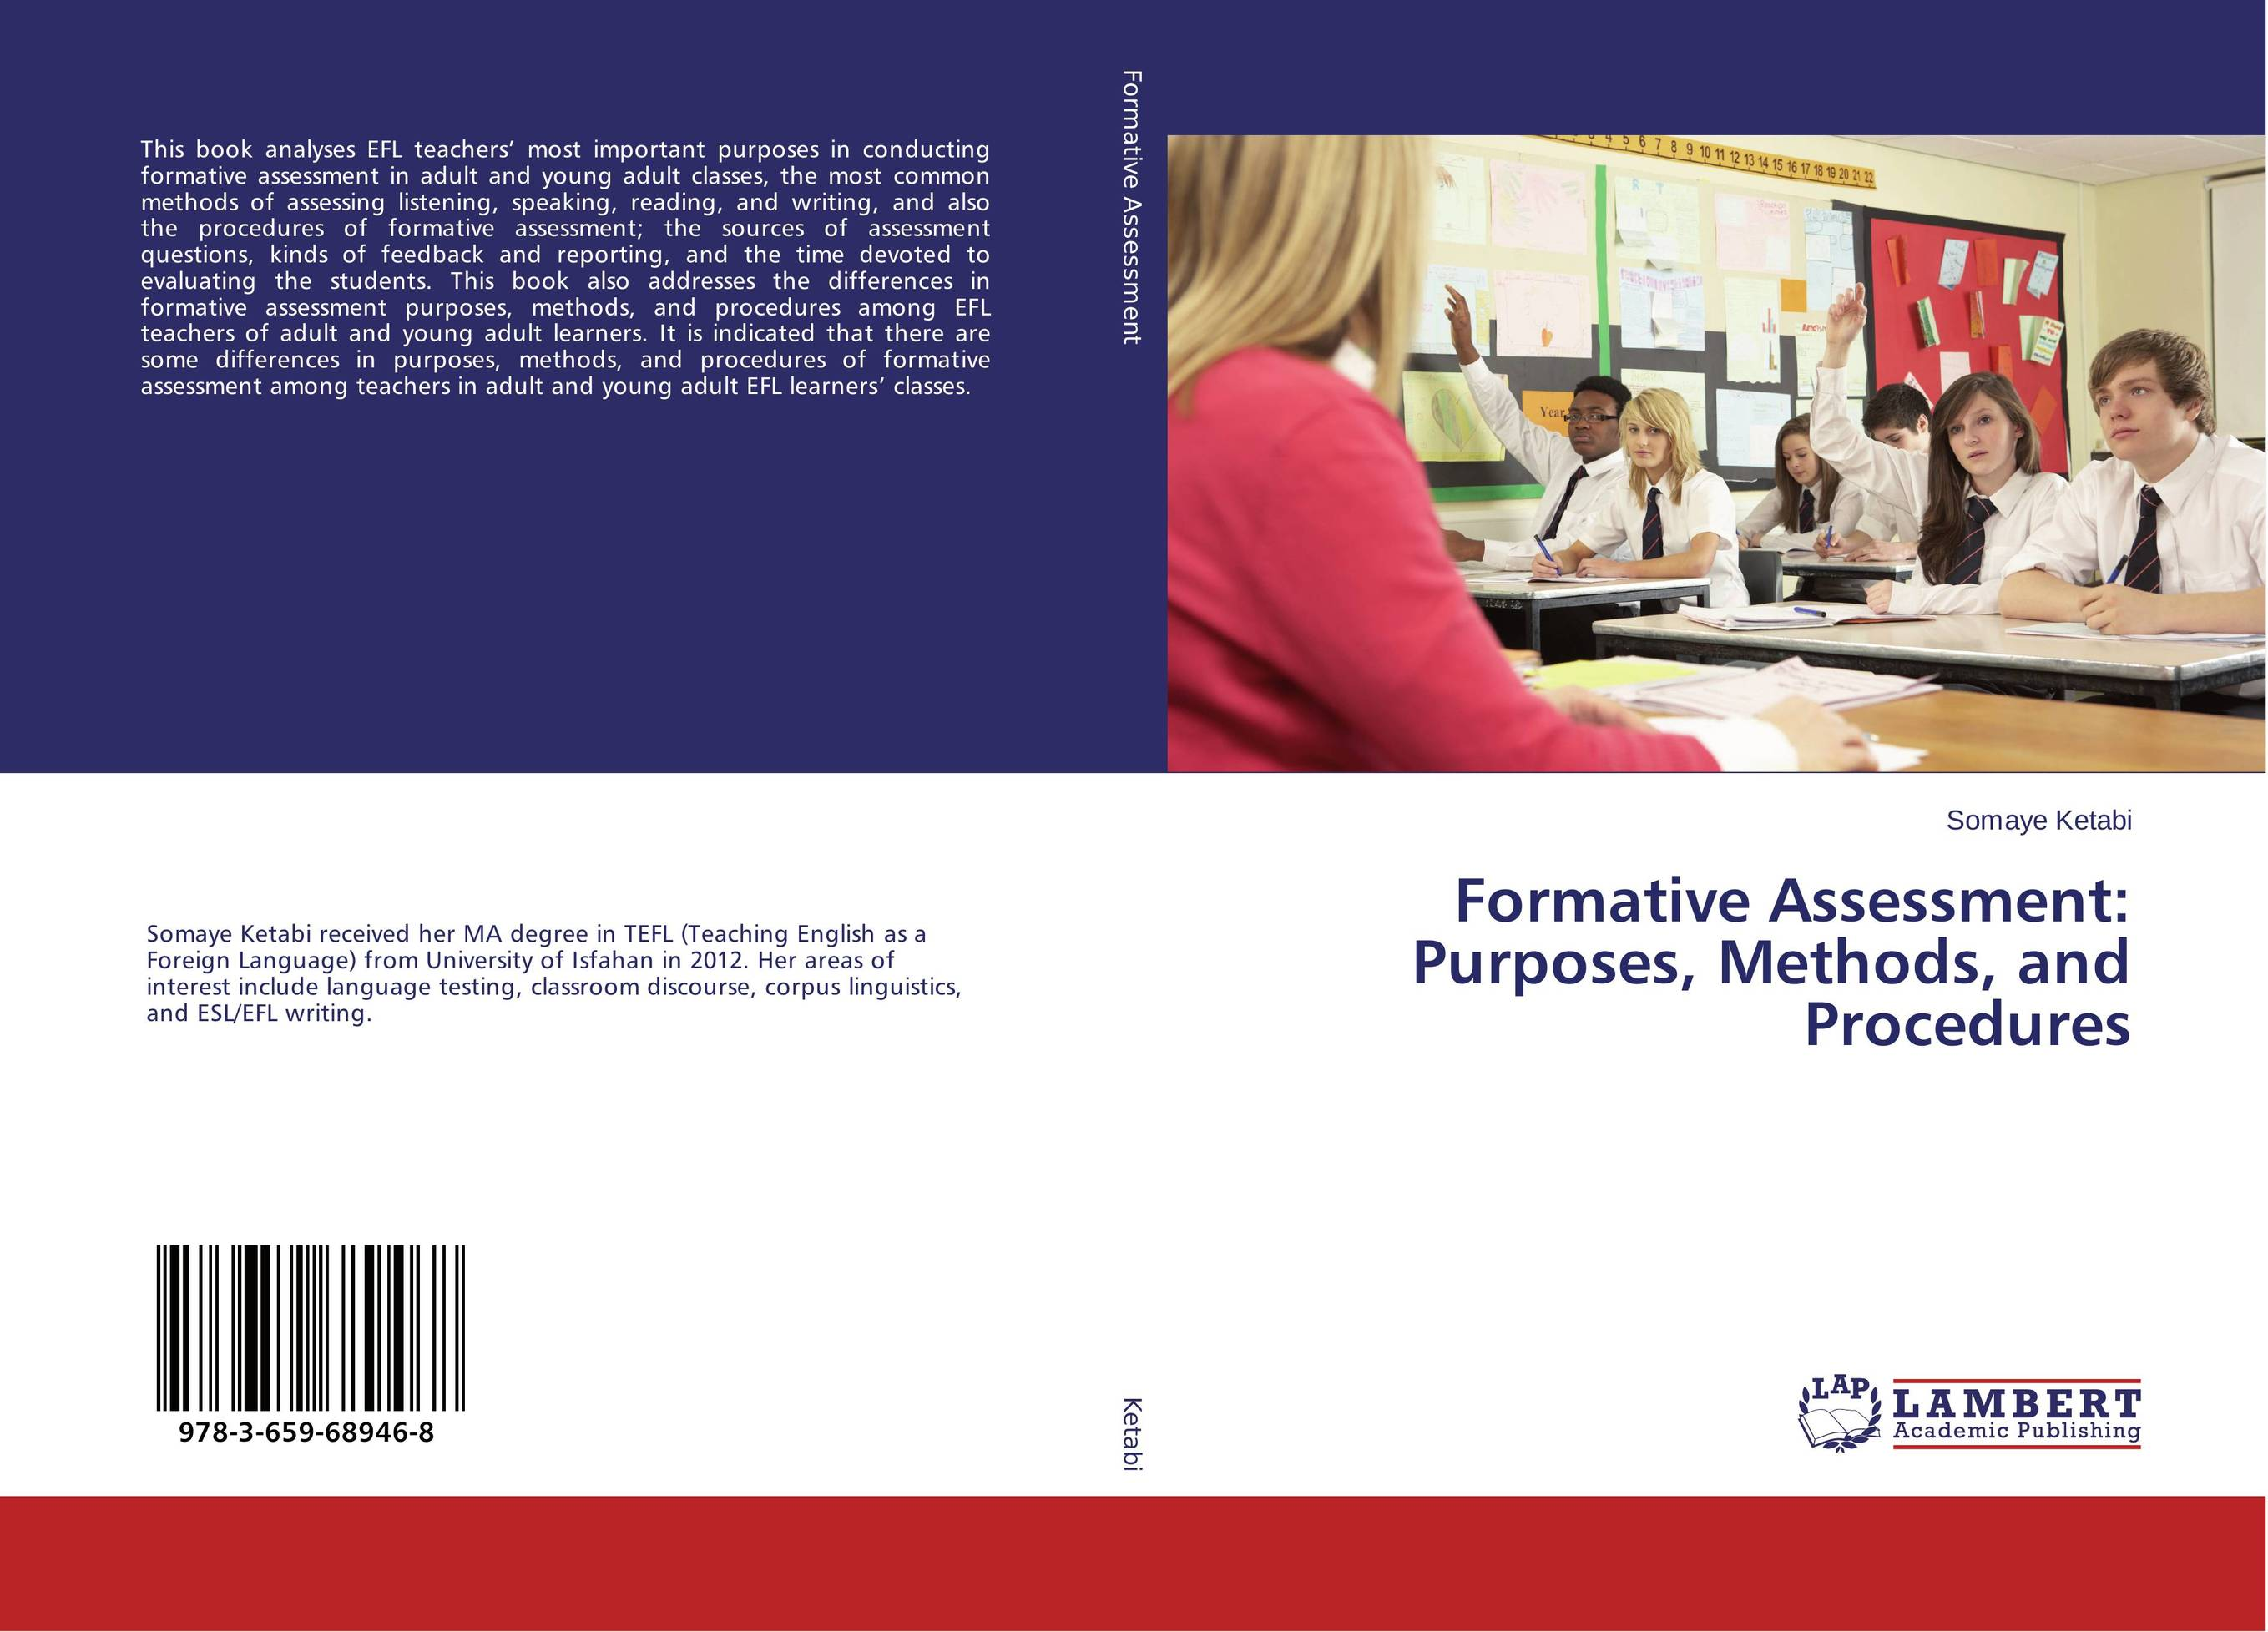 Formative Assessment: Purposes, Methods, and Procedures psychiatric interviewing and assessment